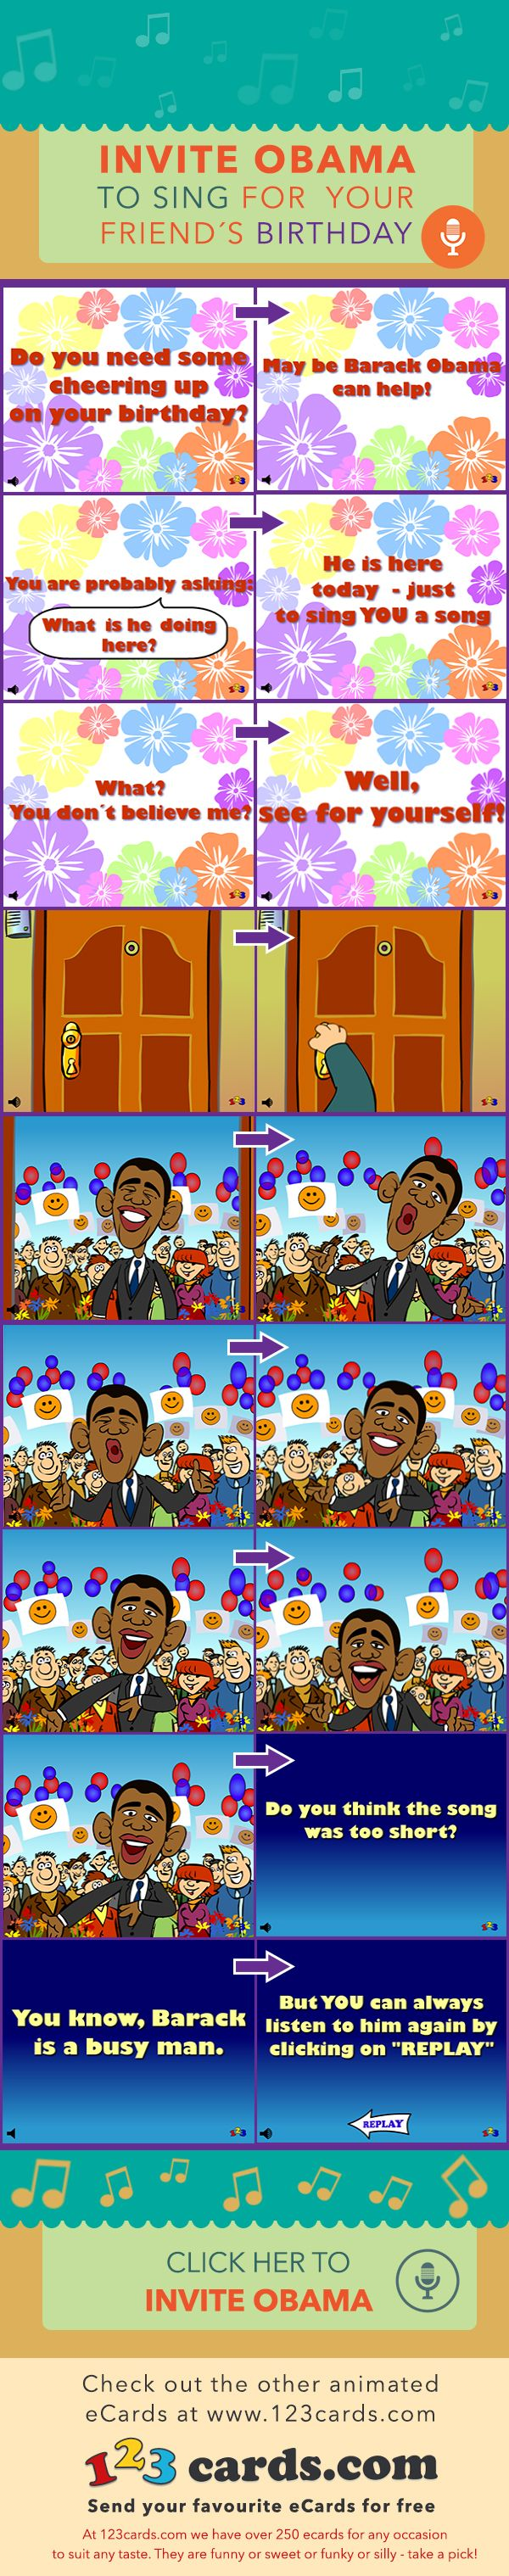 Don't hesitate to invite OBAMA to sing for your friend´s BIRTHDAY!!!  #birthdays #events #wishes #greetings #gifts #presents #ecard #obama #funny #music #animations